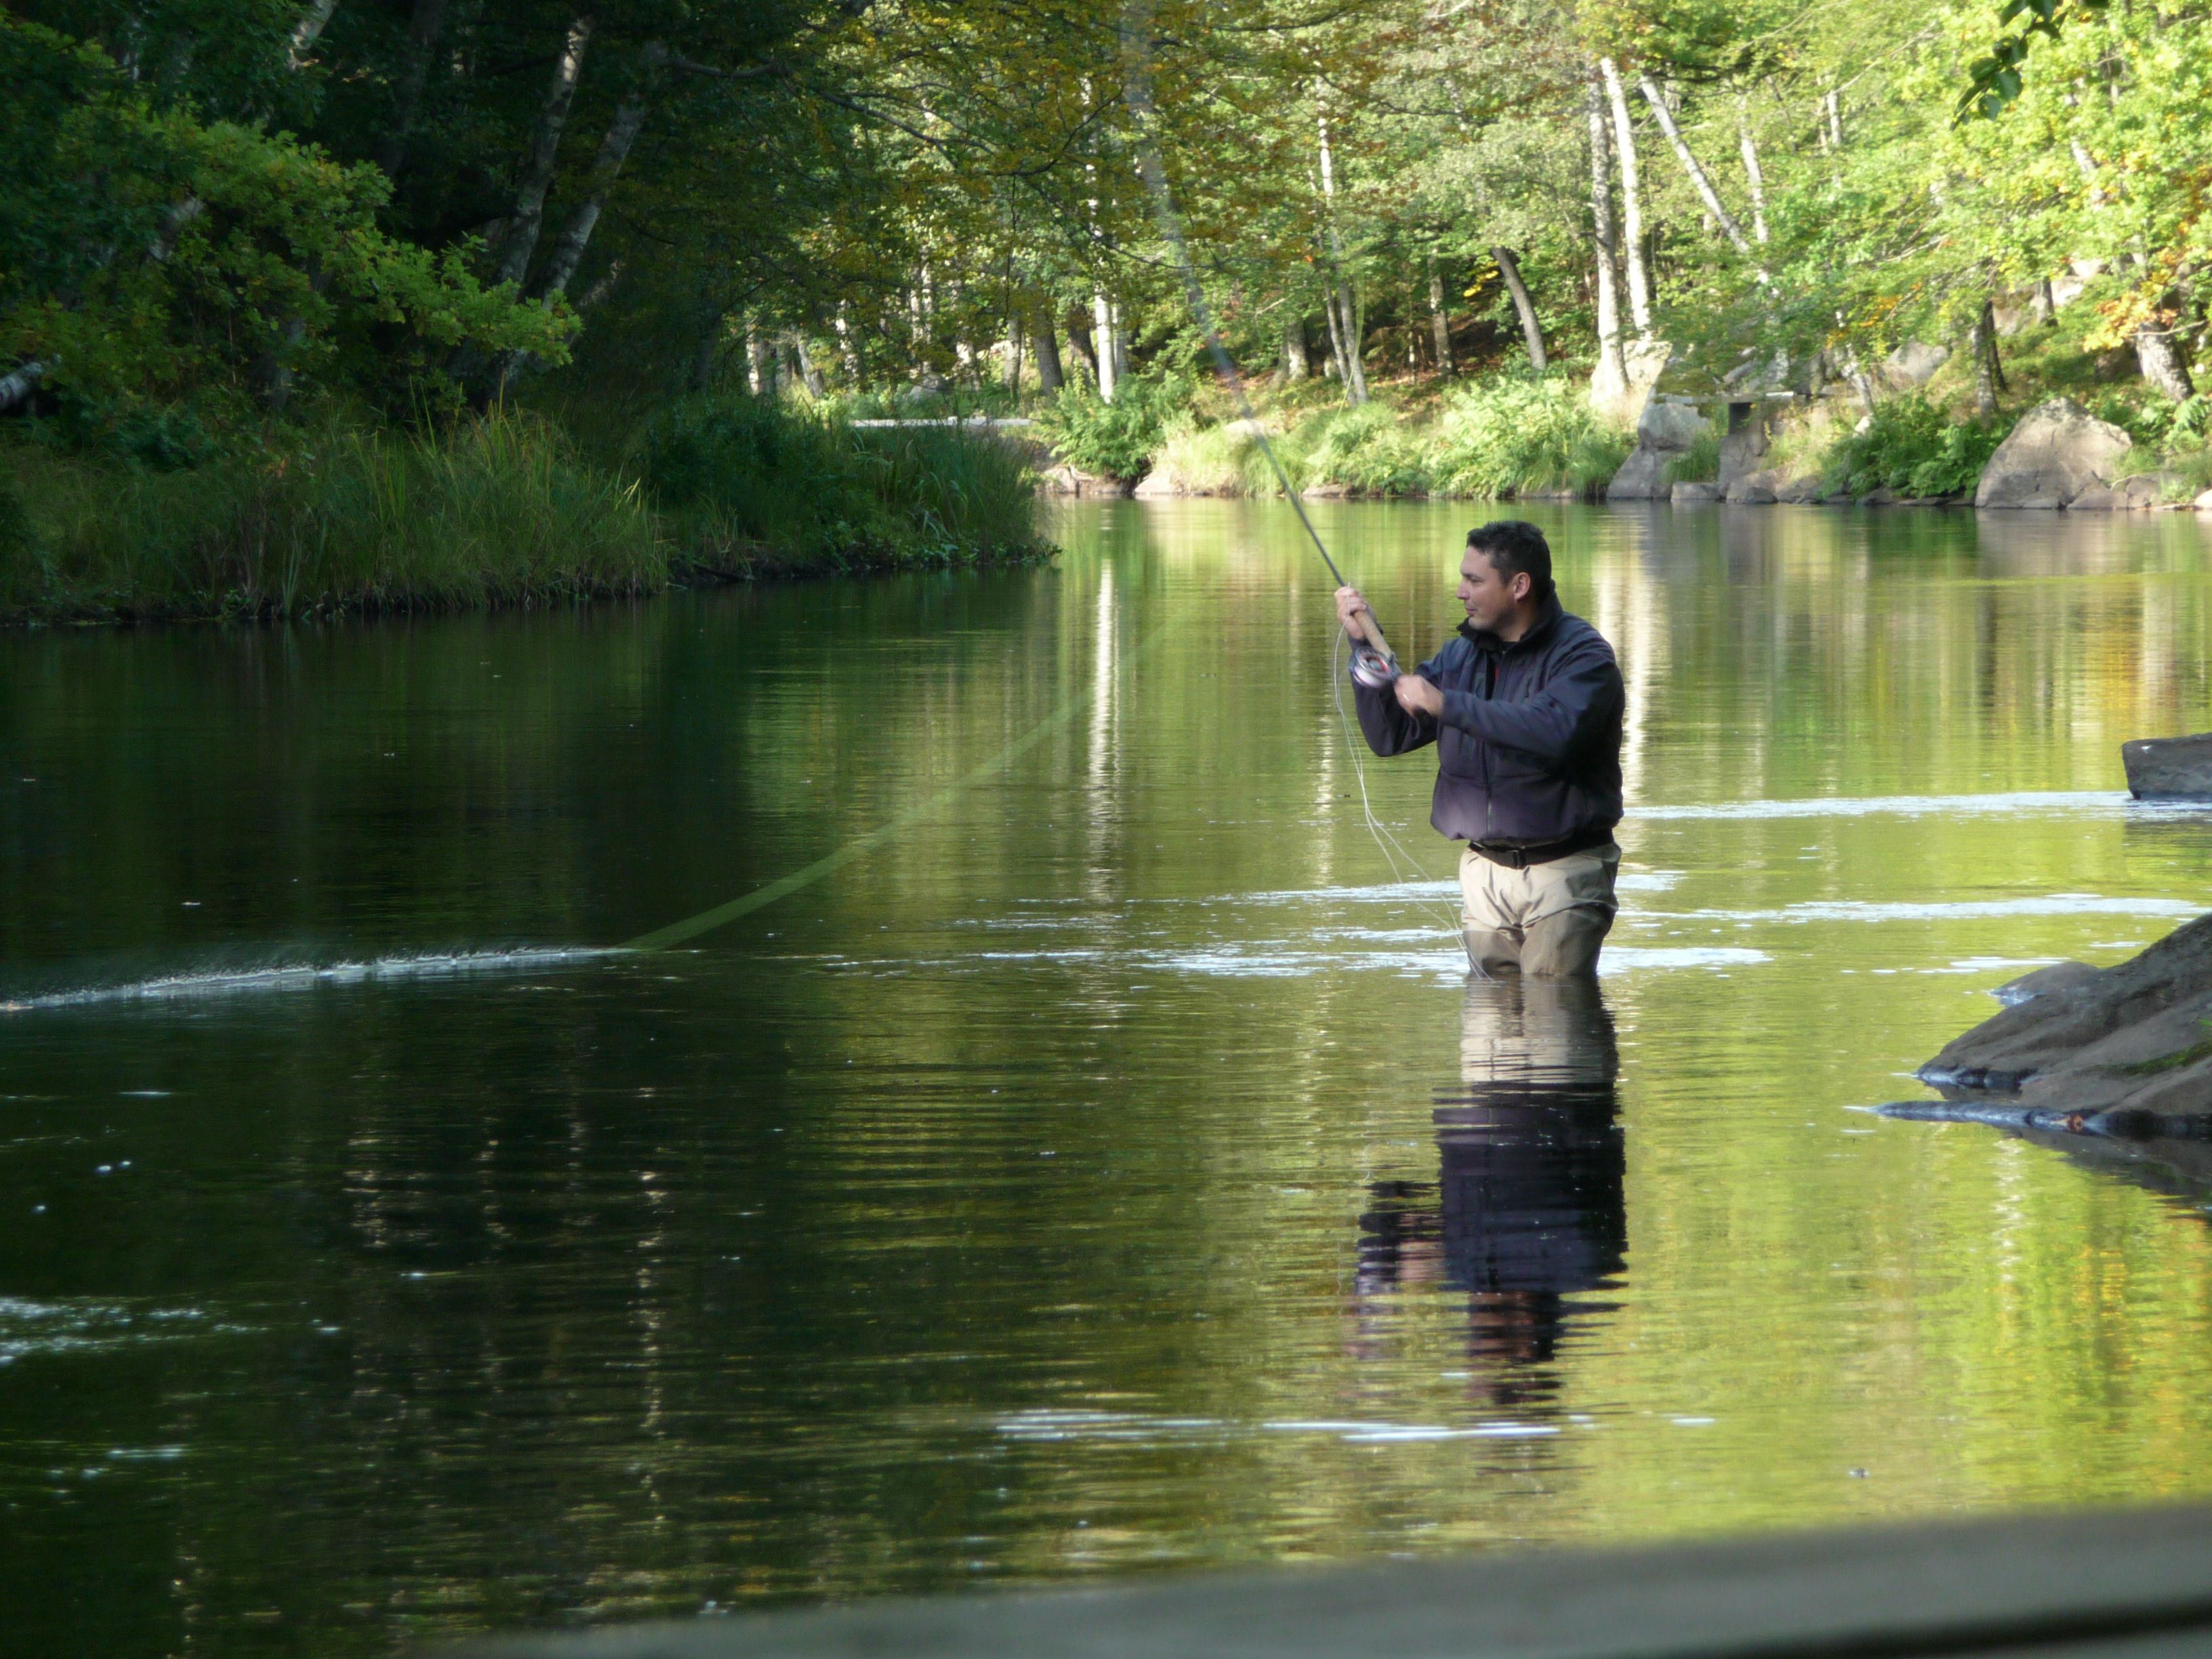 Salmon fishing season starts in Mörrum